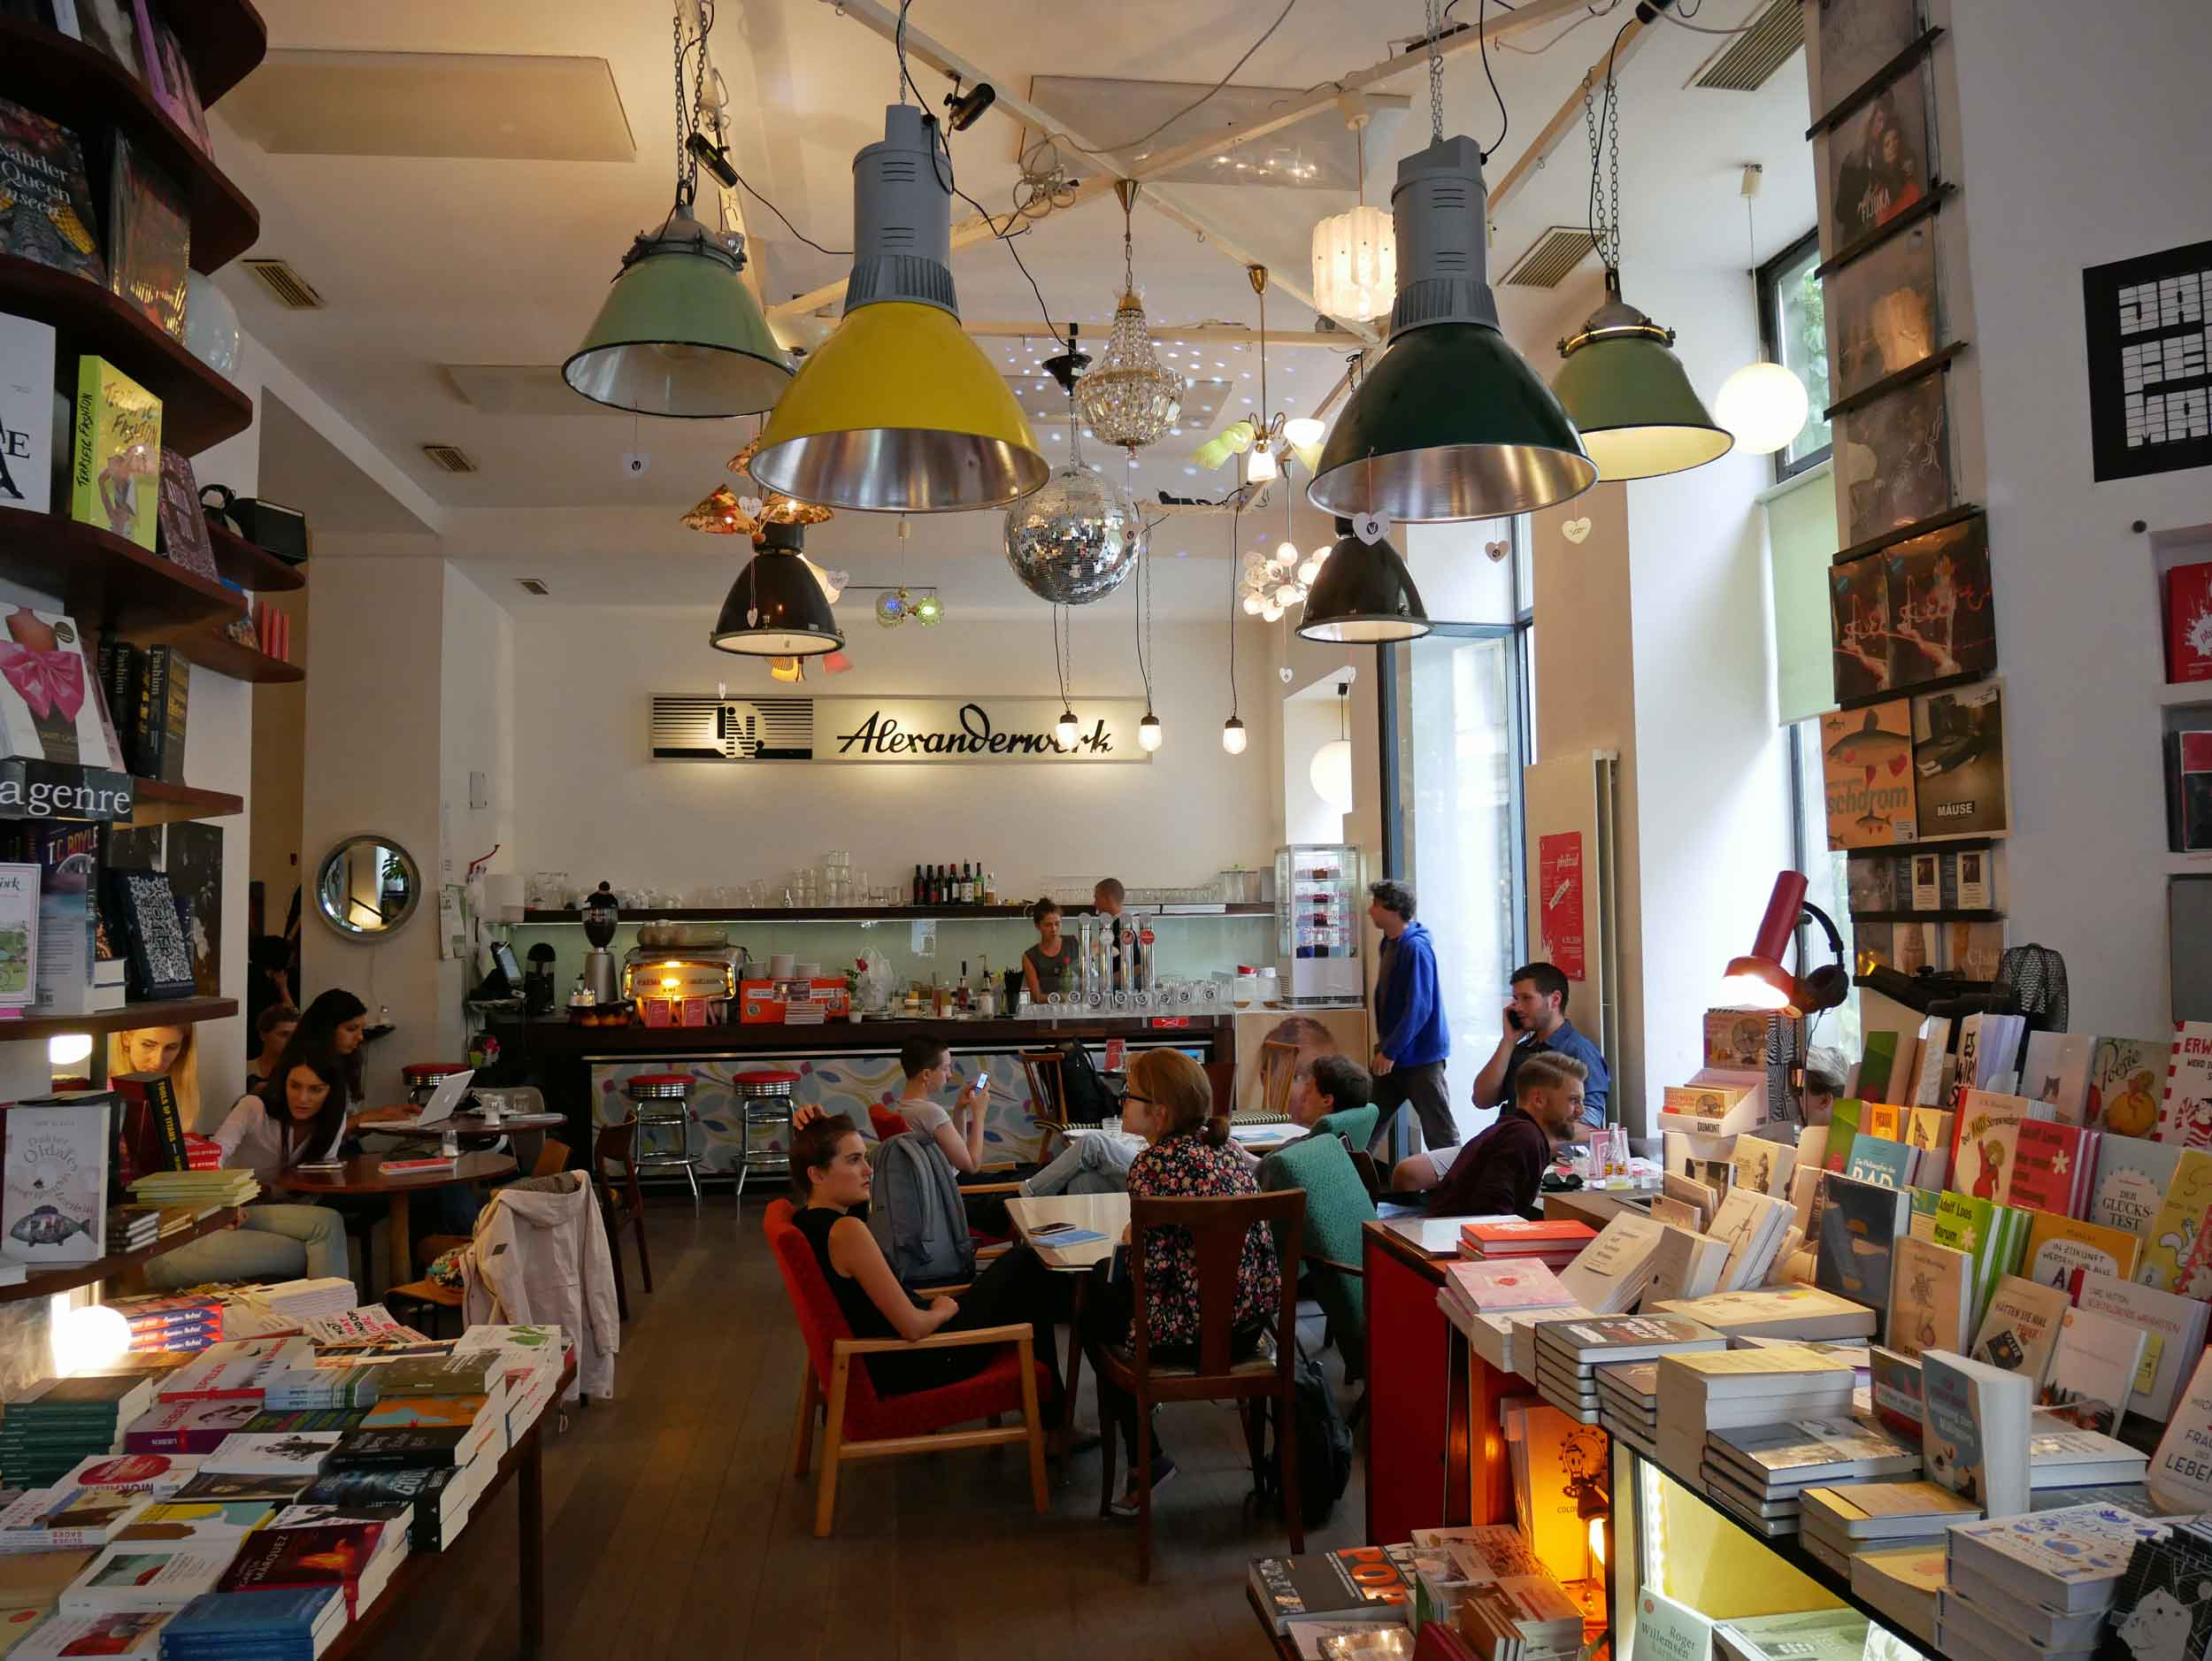 We just cant help visiting a bookshop in every city we visit – Phil, in Vienna's Mariahilf neighborhood, has a cozy atmosphere and serves a wide selection of drinks.